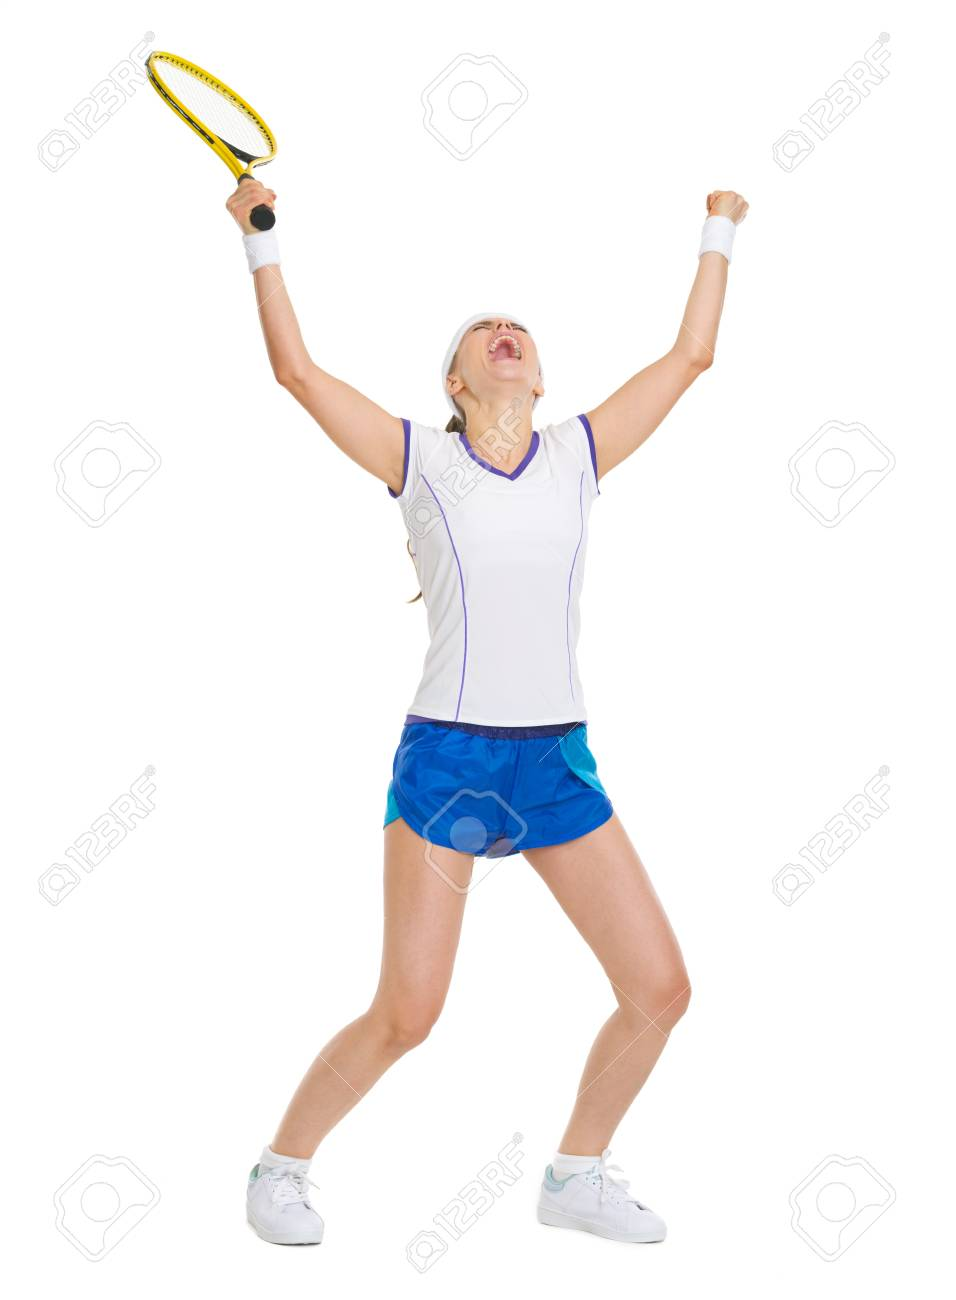 Full length portrait of happy tennis player rejoicing in success Stock Photo - 18059381